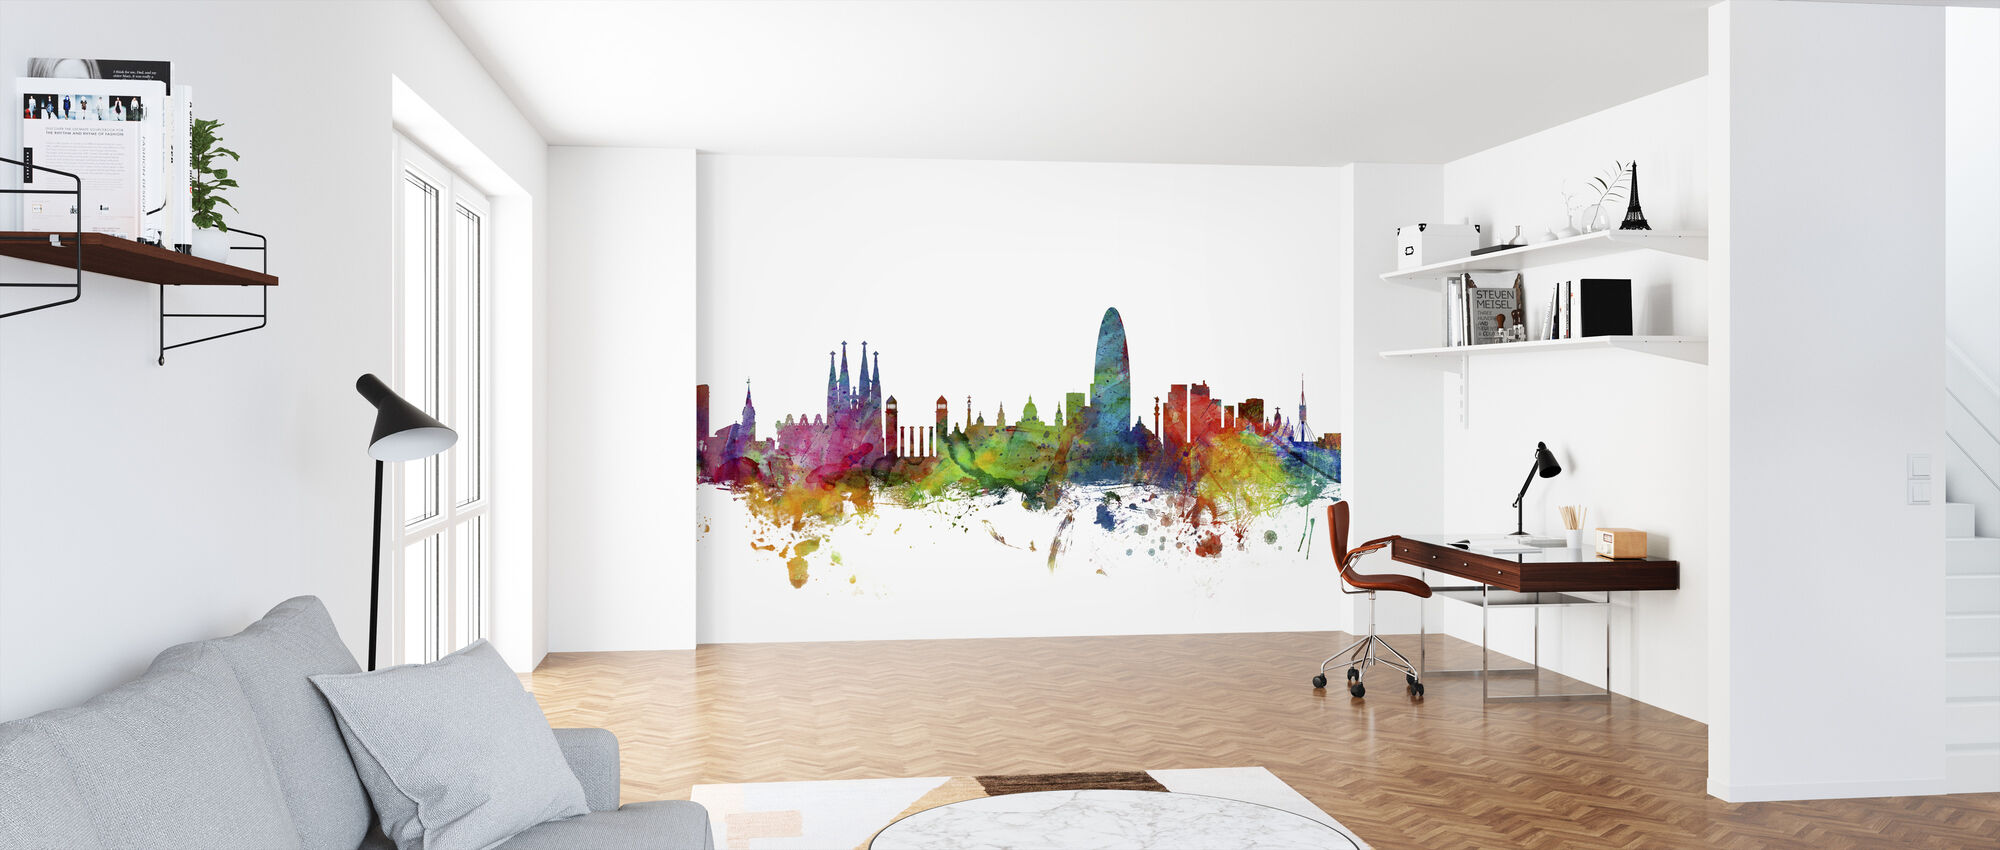 Barcelona Skyline - Wallpaper - Office